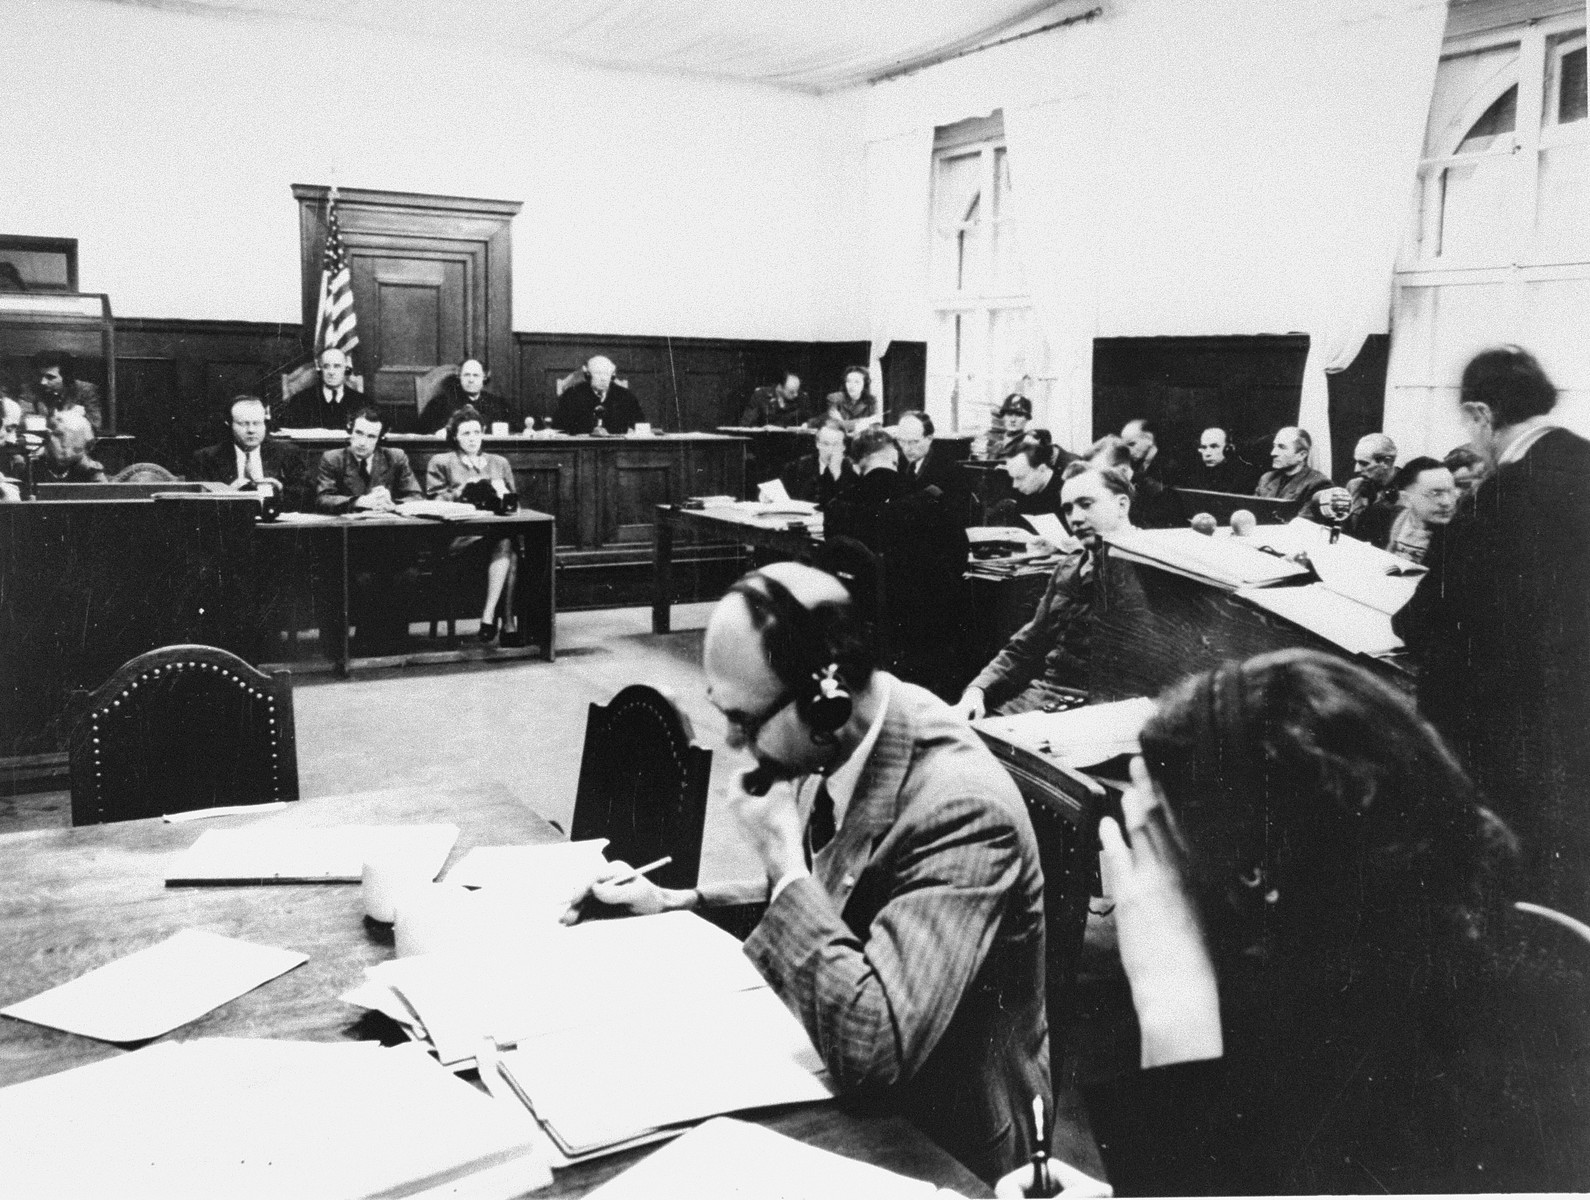 View of the courtroom during a session of the RuSHA Trial.    The judges are seated in the rear and the defendants are seated in the dock at the right.